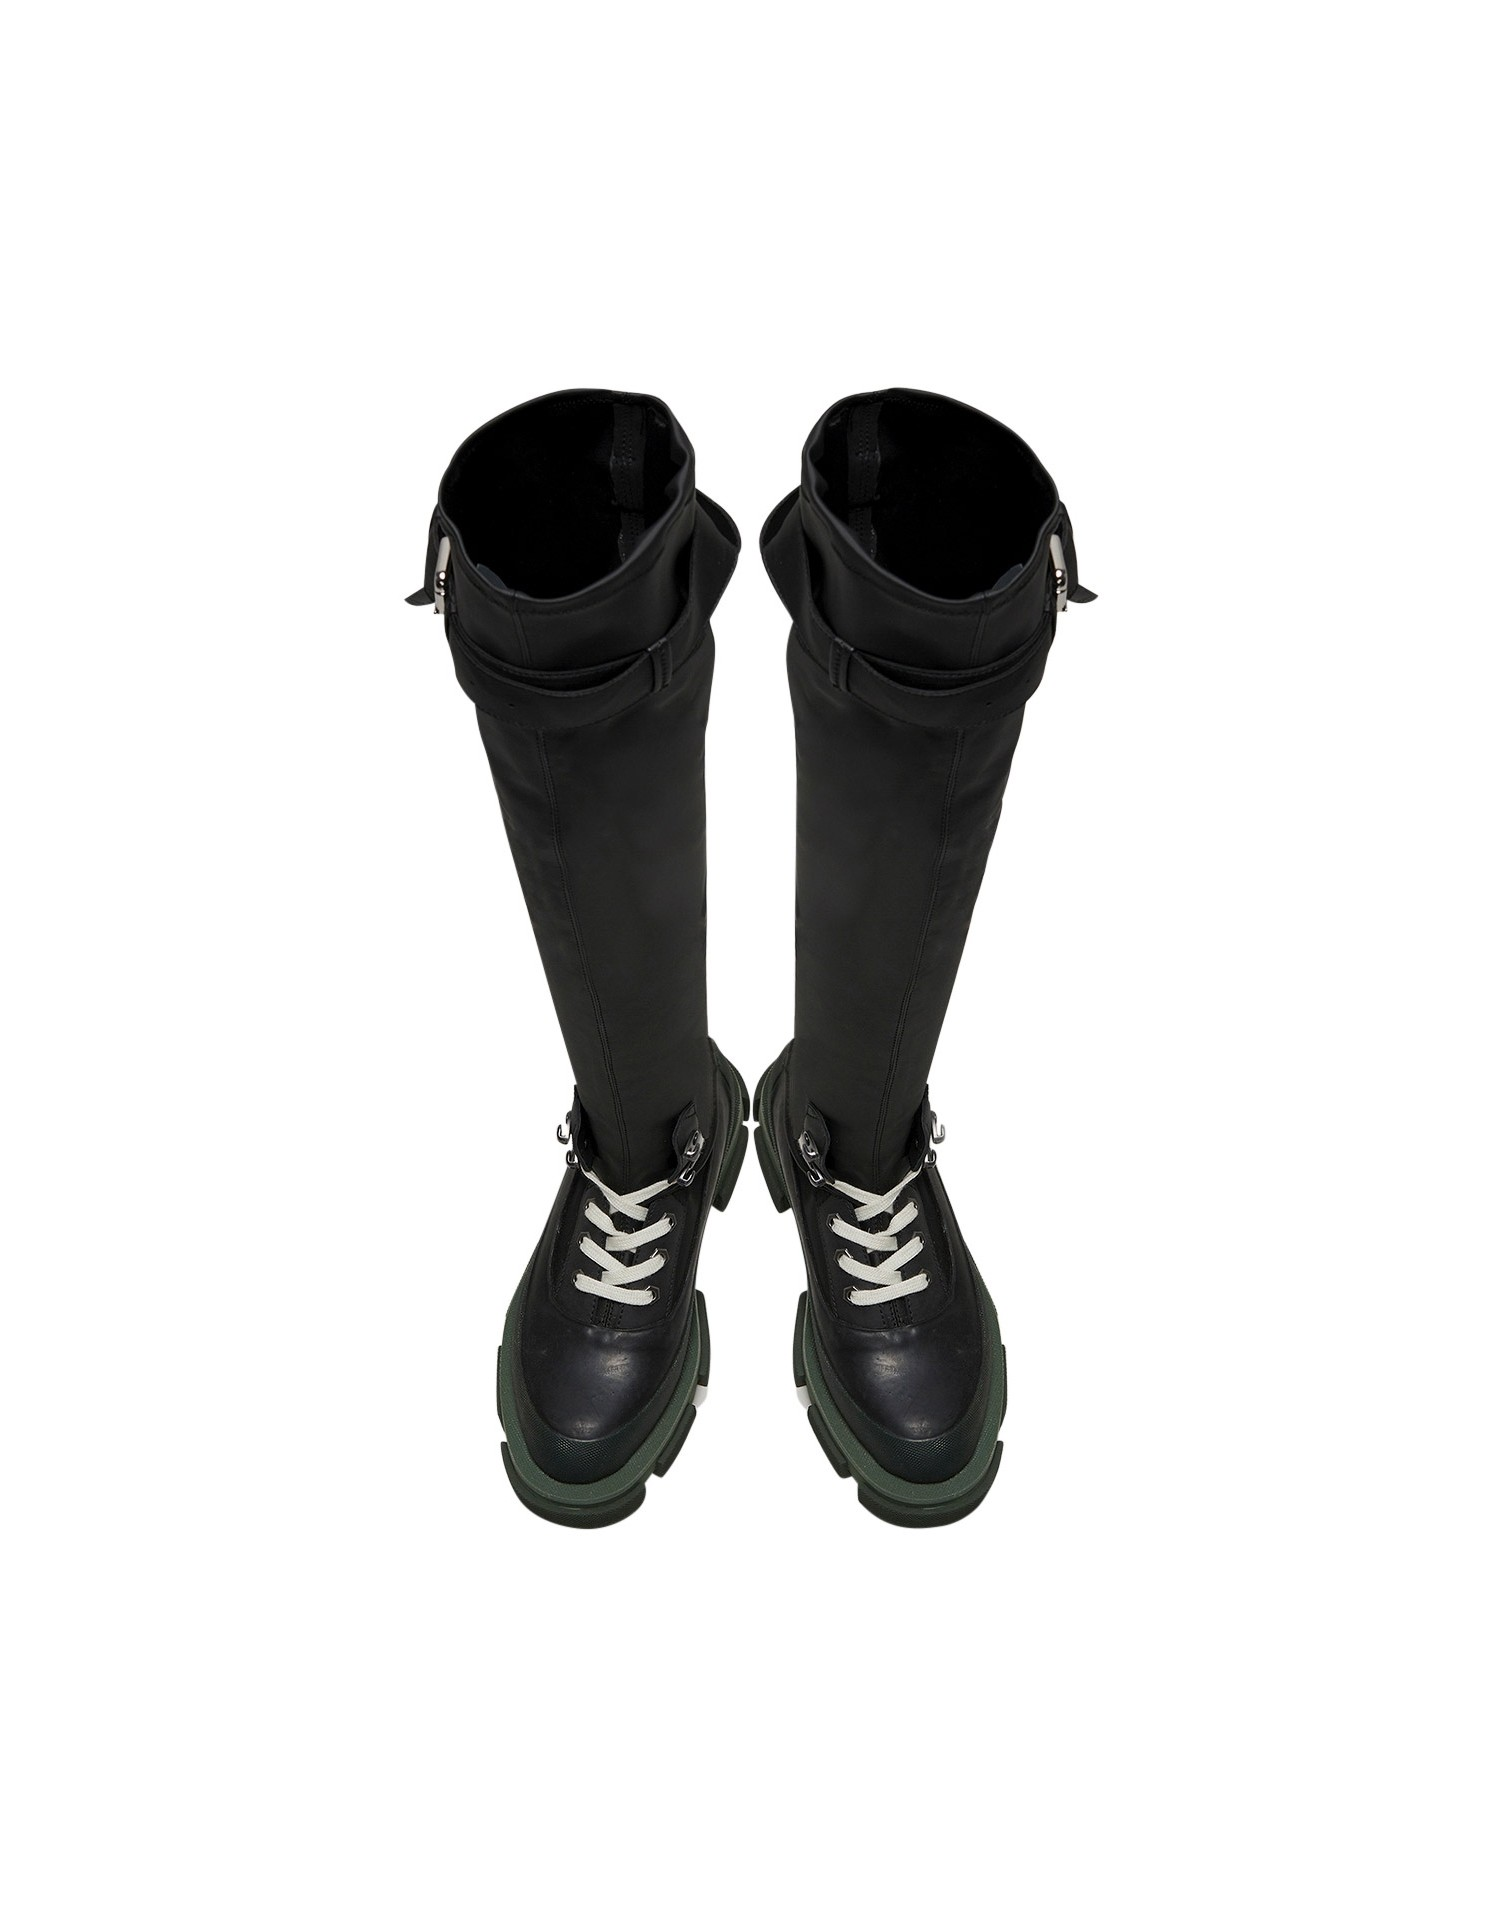 Both x MONSE Gao Thigh High Boots in Olive and Black Aerial View